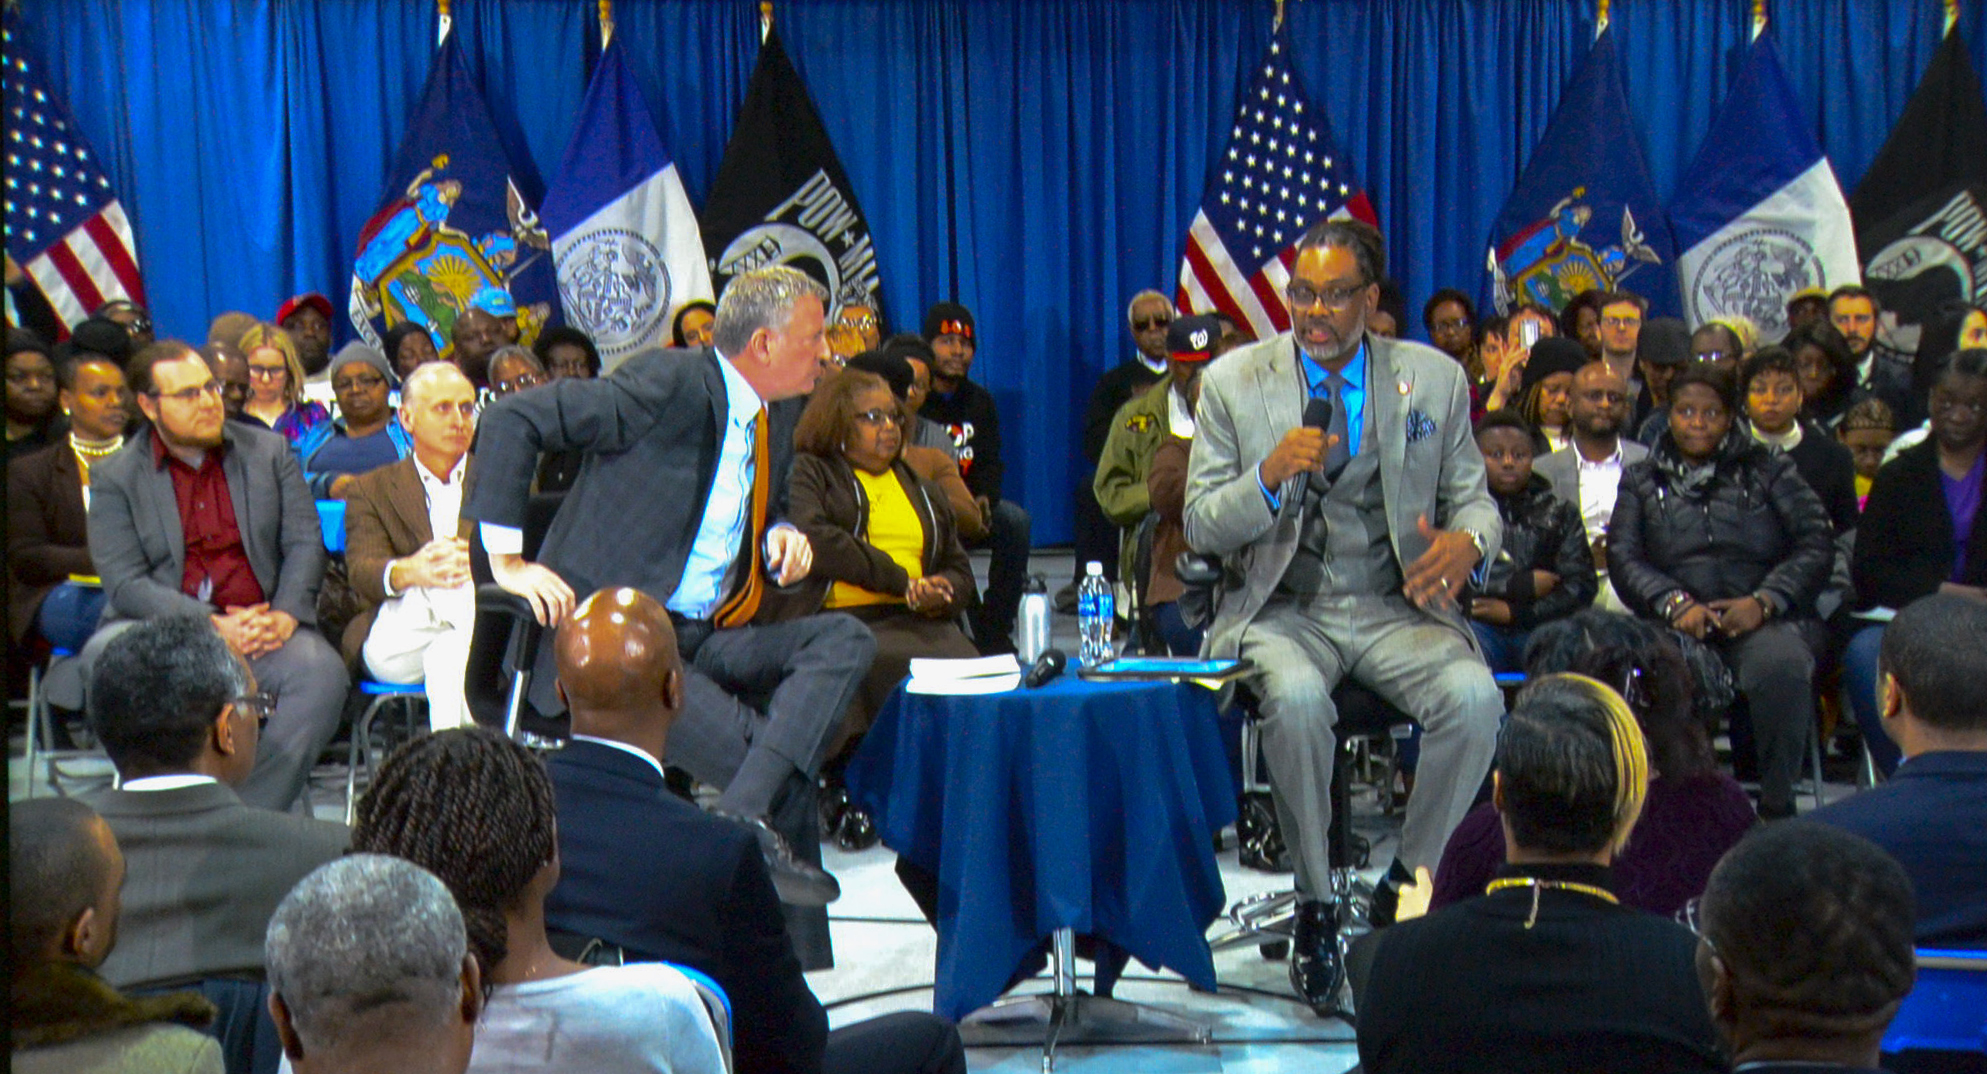 Mayor Bill De Blasio with Council member Robert Cornegy Jr as moderator